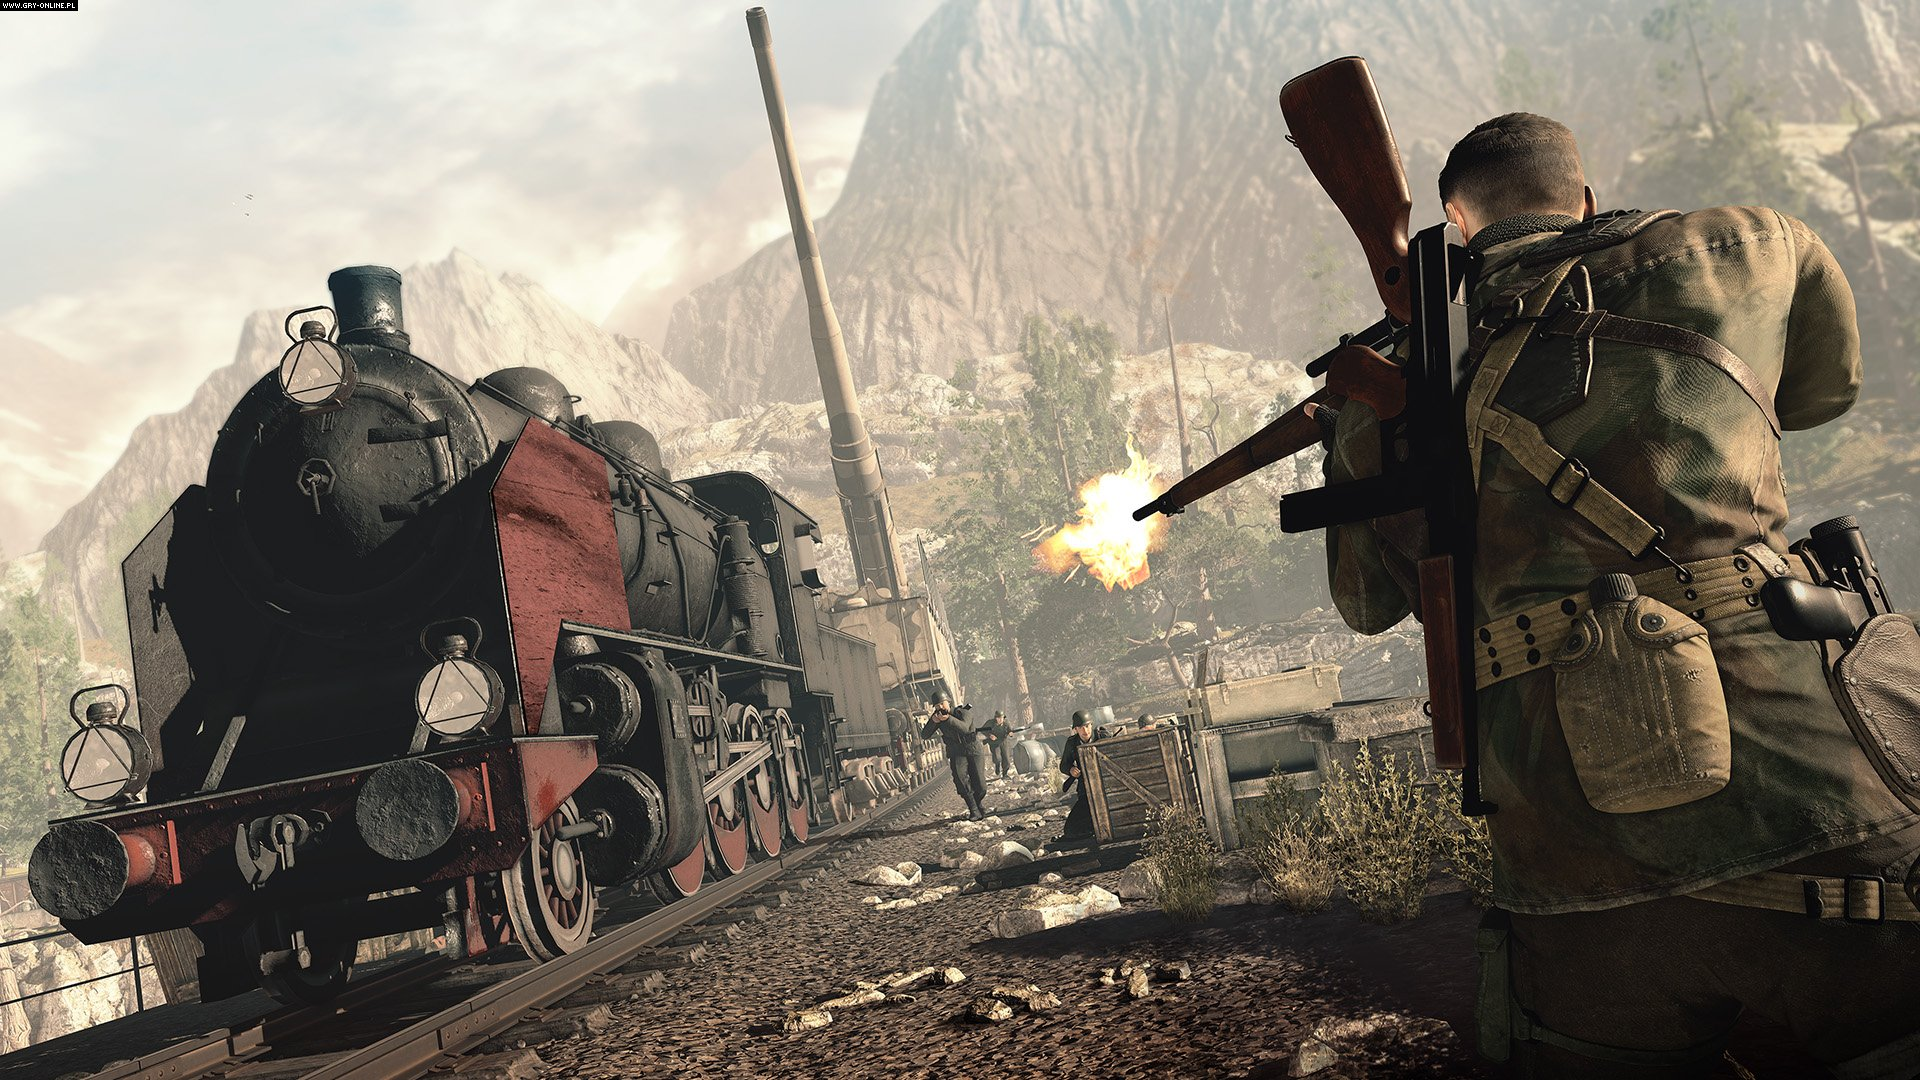 Sniper Elite 4 PC, PS4, XONE Games Image 18/26, Rebellion